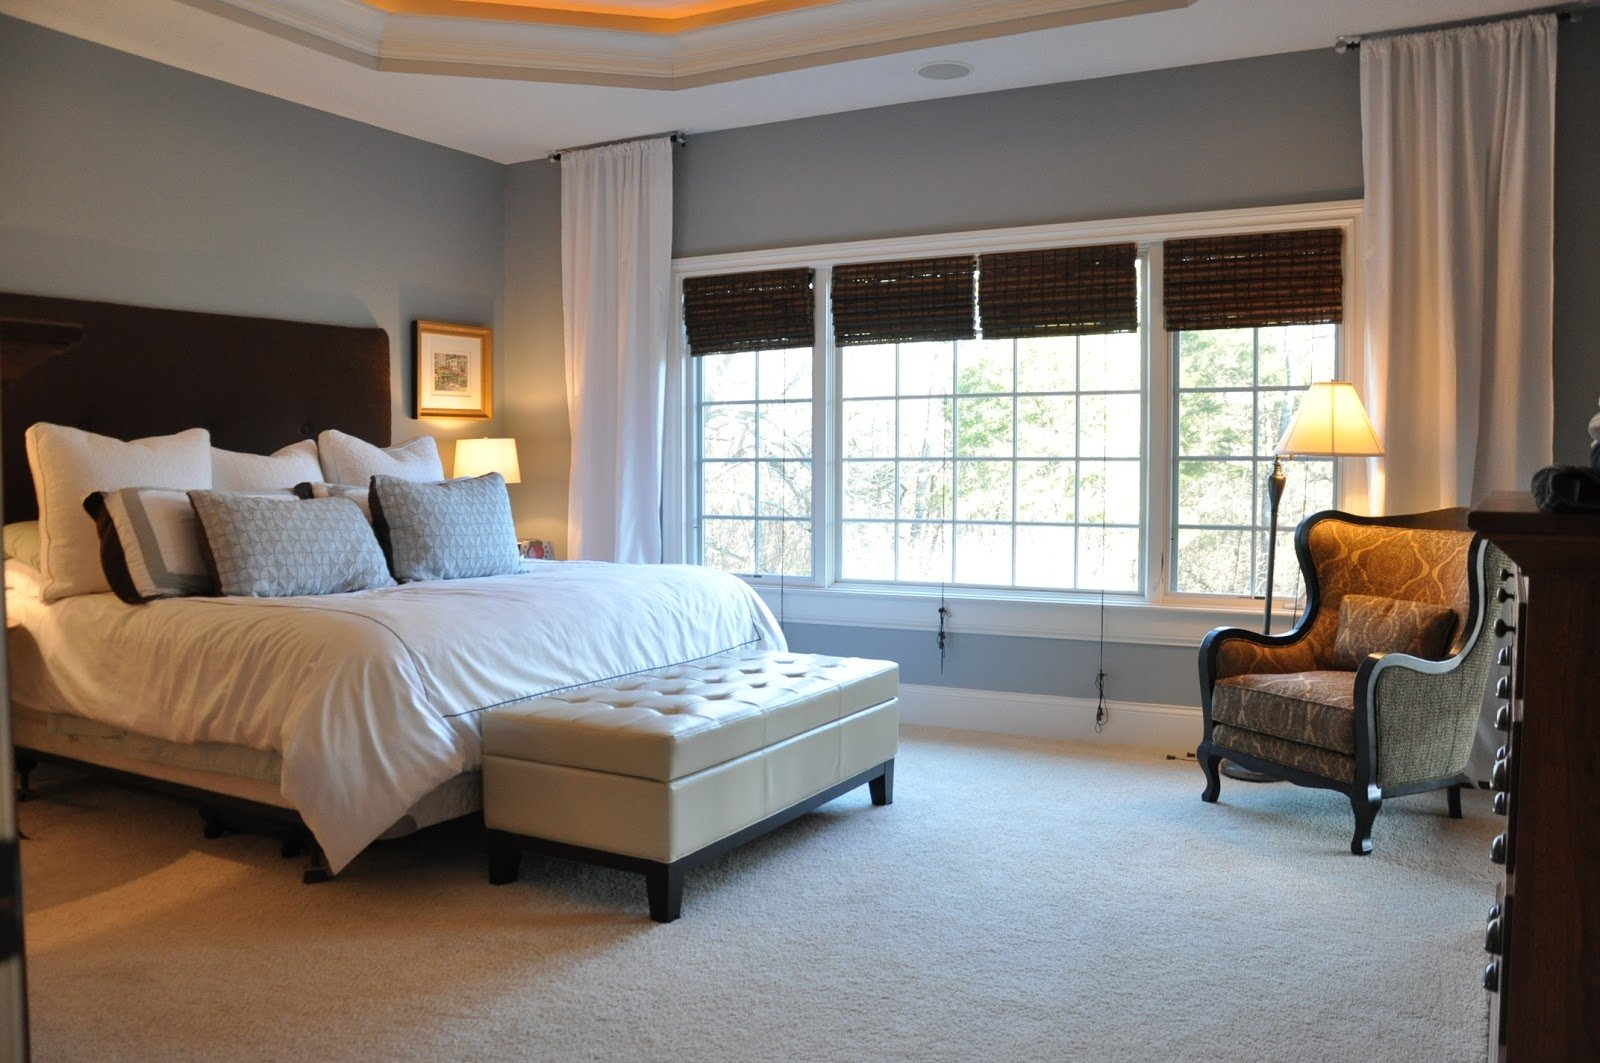 Best Sherwin Williams Master Bedroom Colors With Pictures   July 2021 14074851749